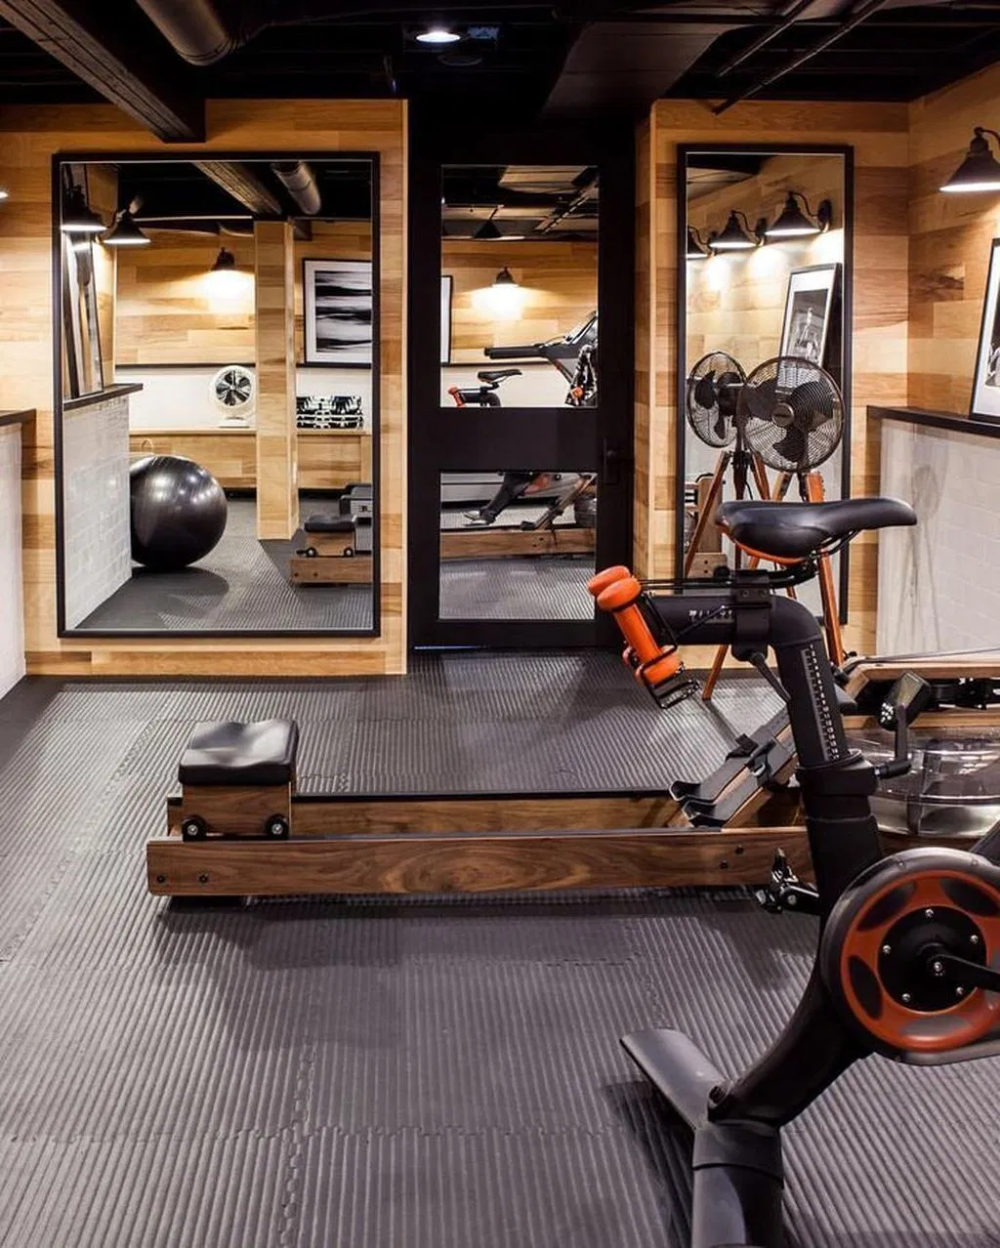 Home Gym Design Ideas: 35 Nice Home Gym Design And Decor Ideas - SearcHomee